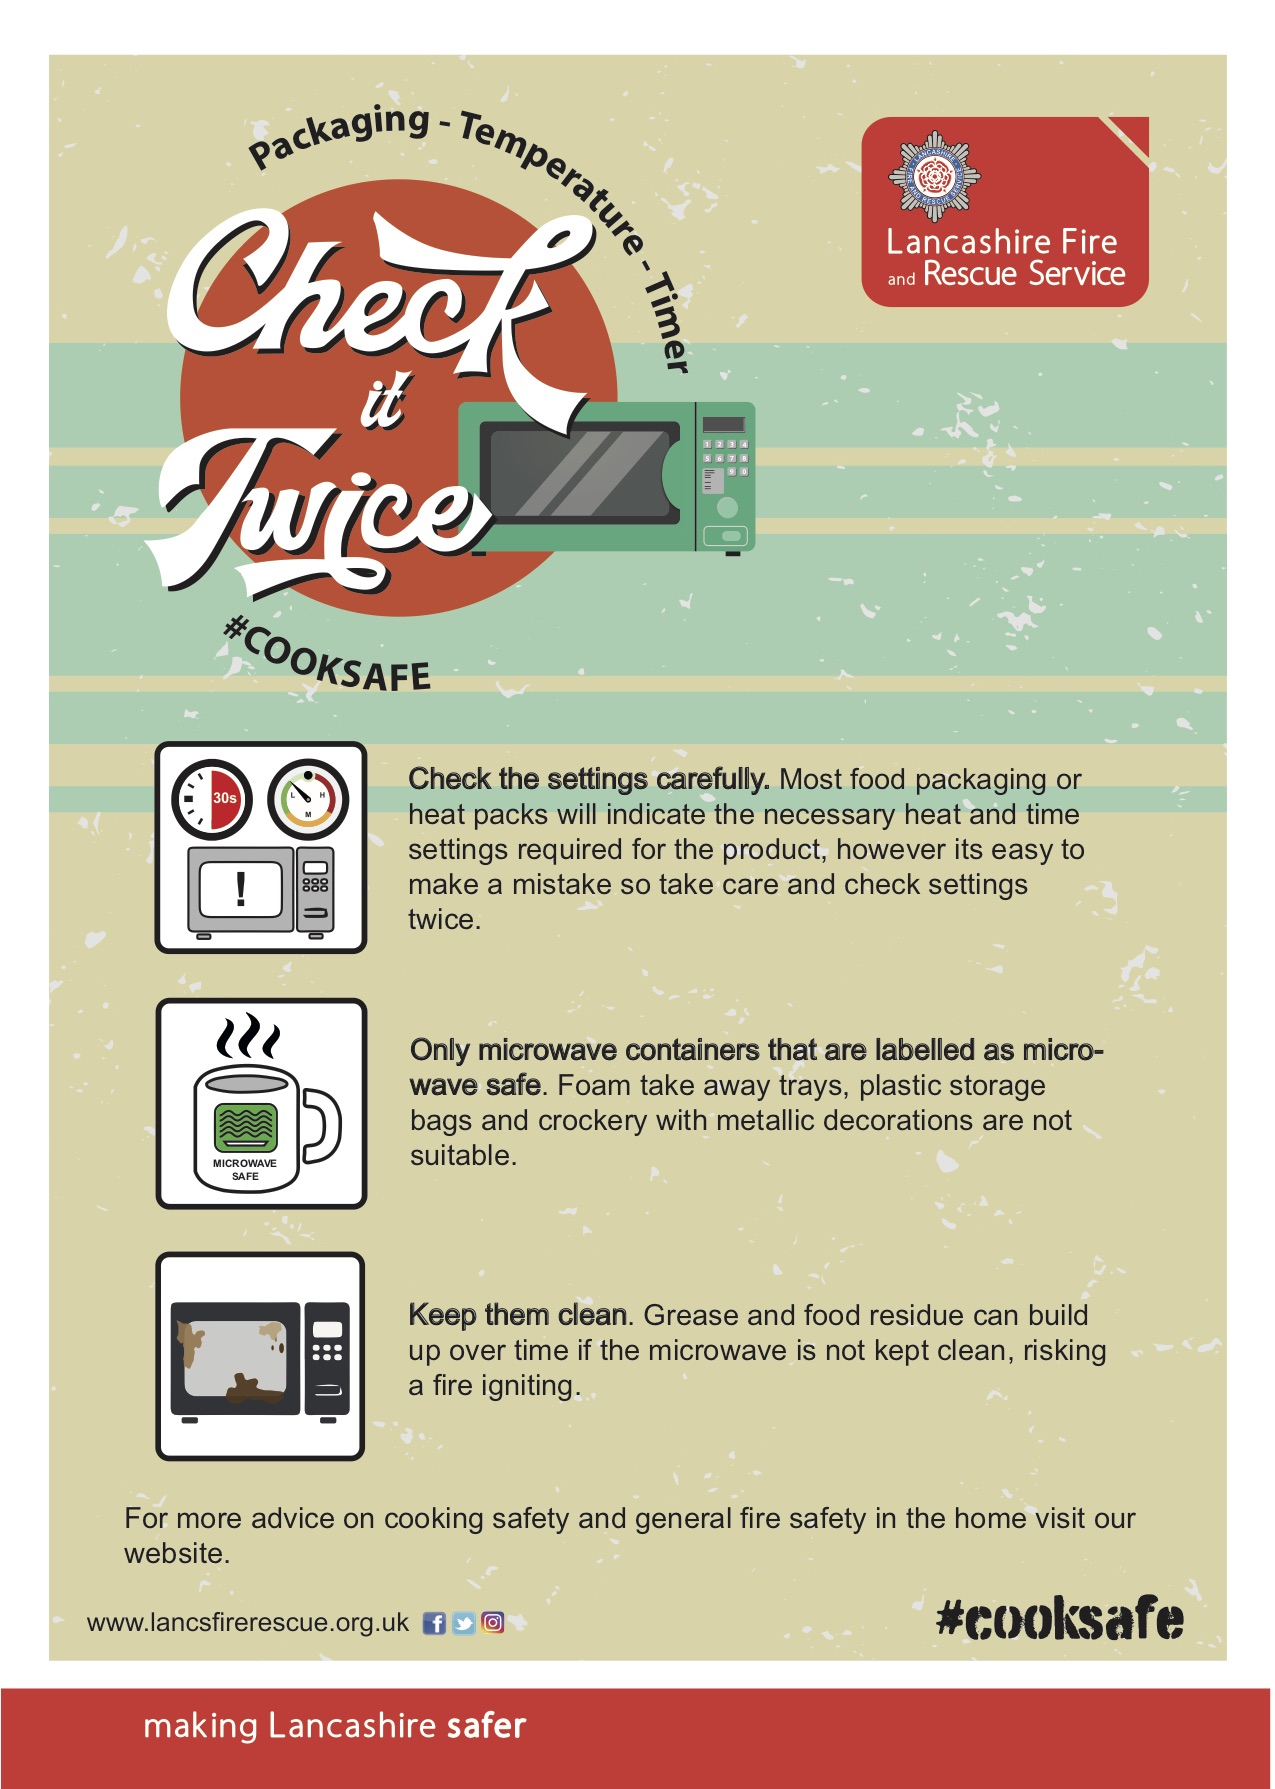 Check it twice microwave safety advice